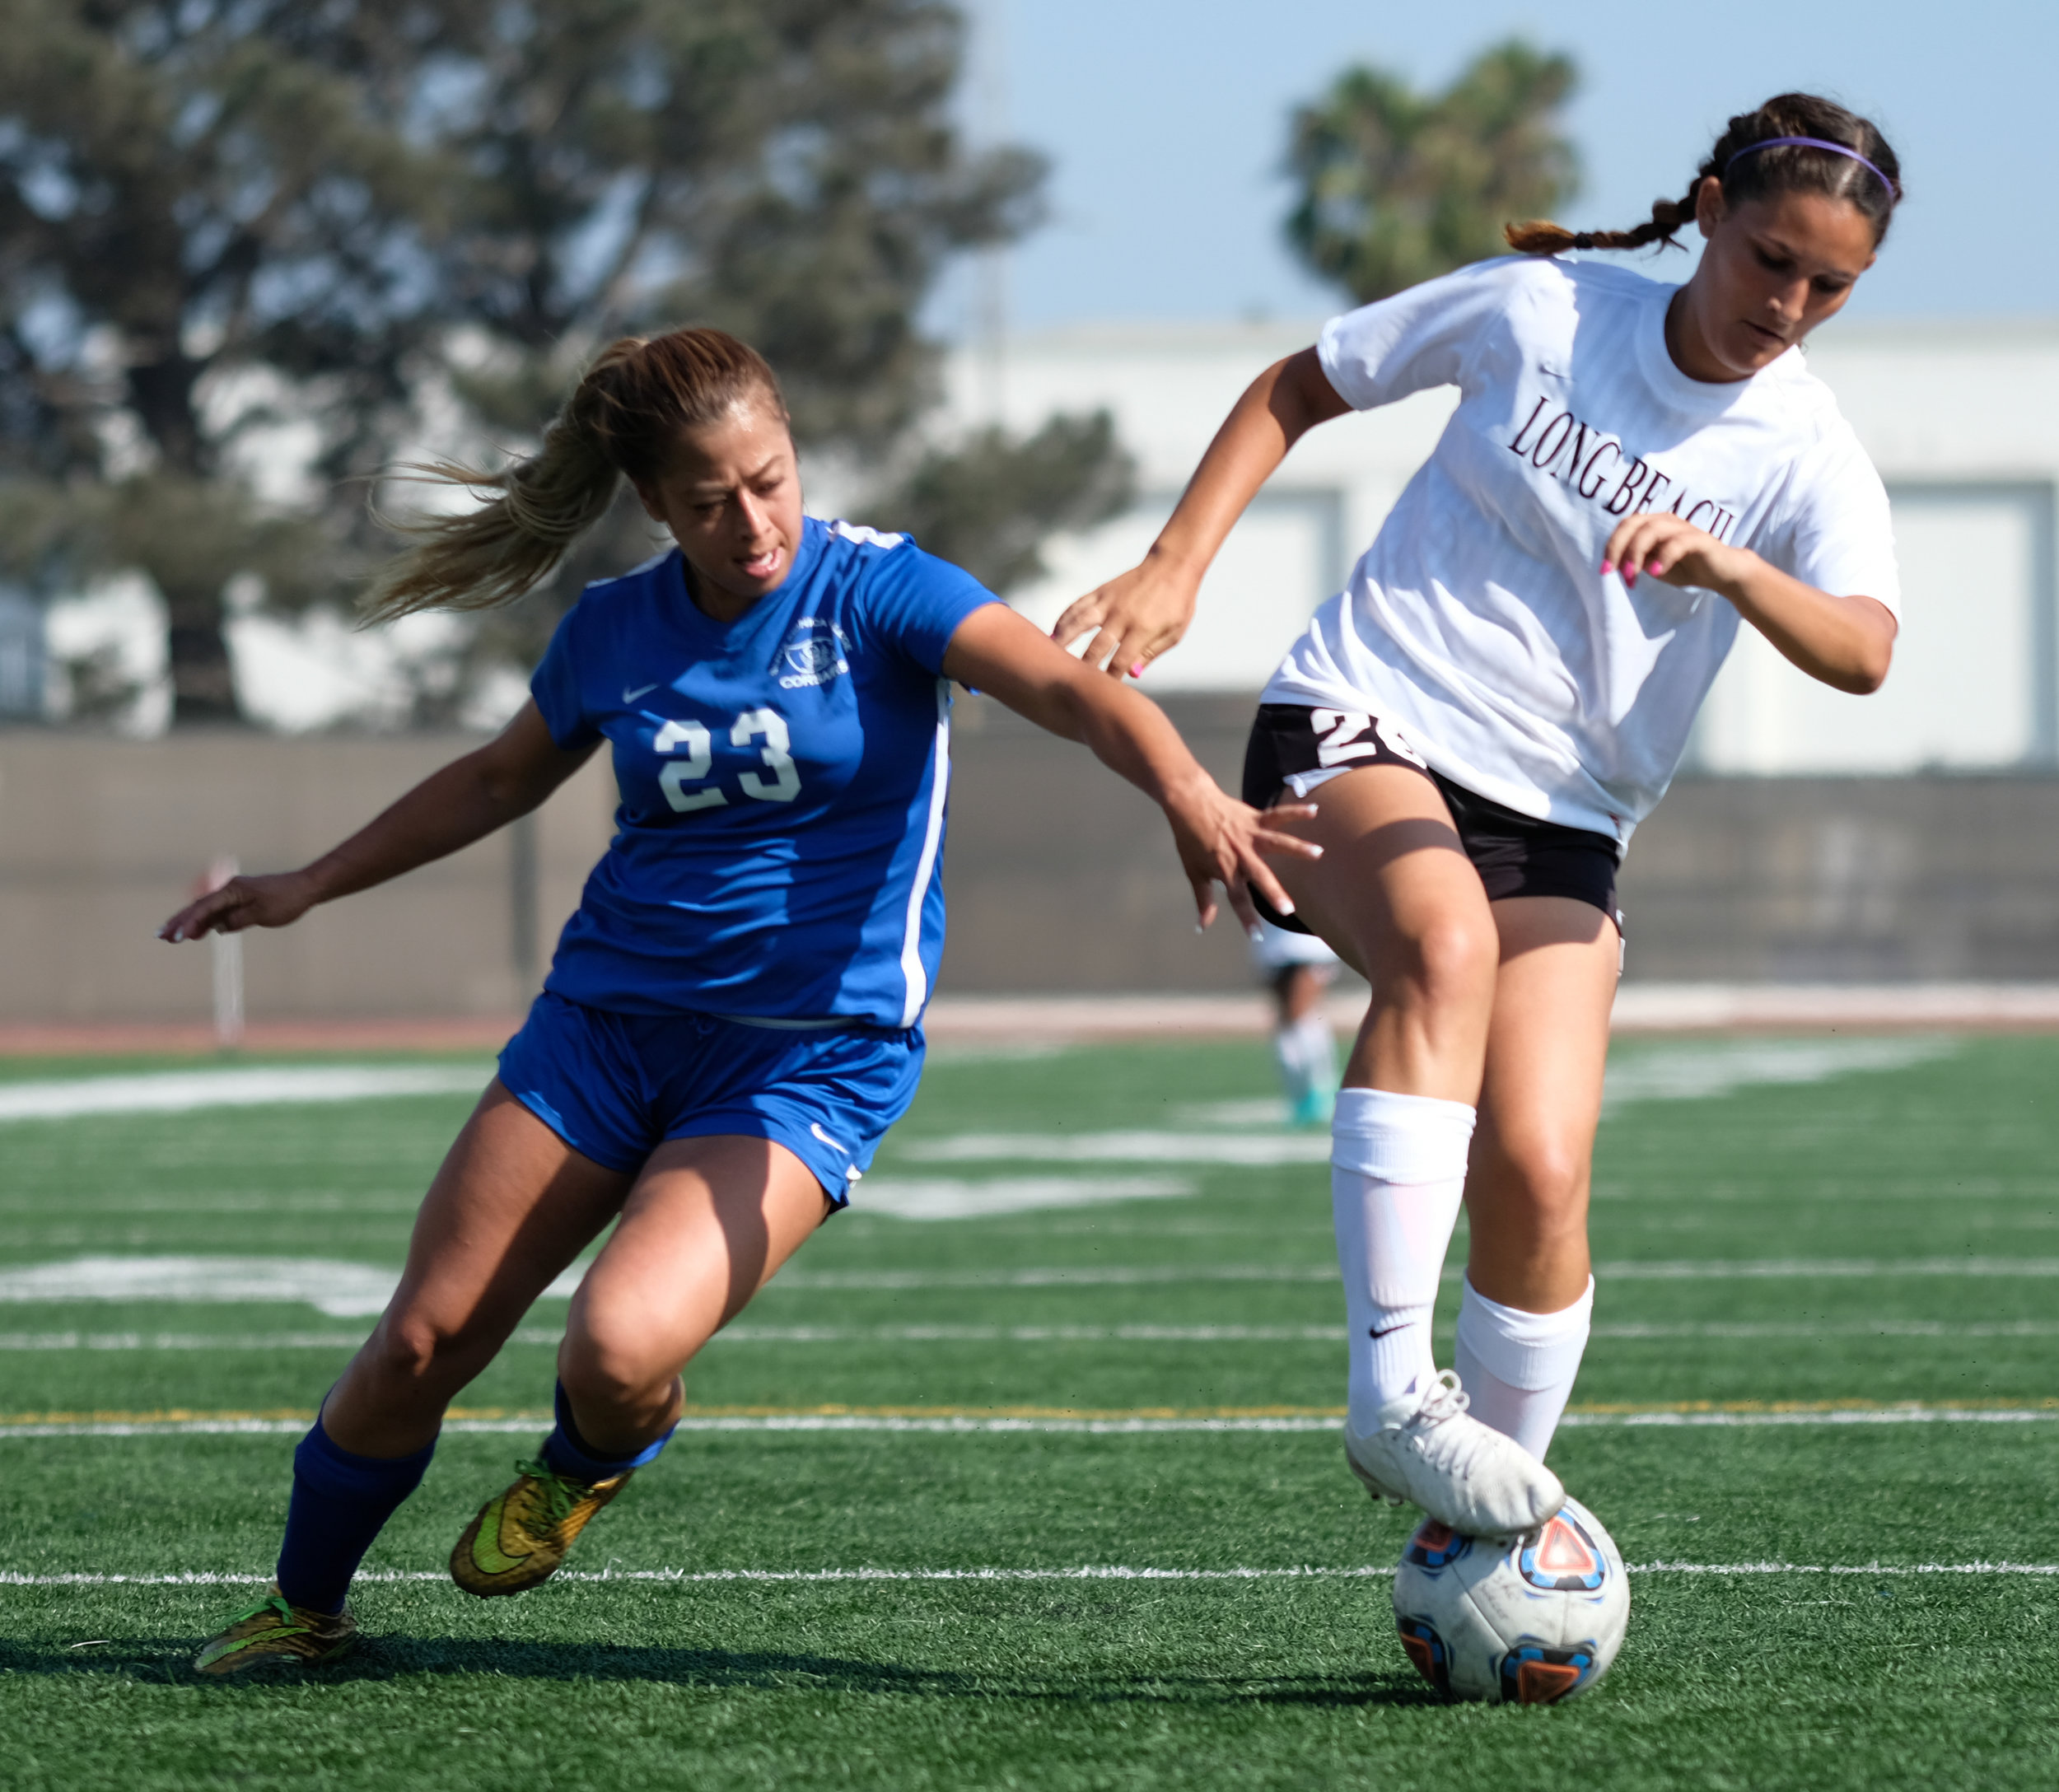 On Tuesday August 29th 2017, Daysi Serrano (#23) is attempting to make a steal against Long Beach City College in Santa Monica, CALIF.